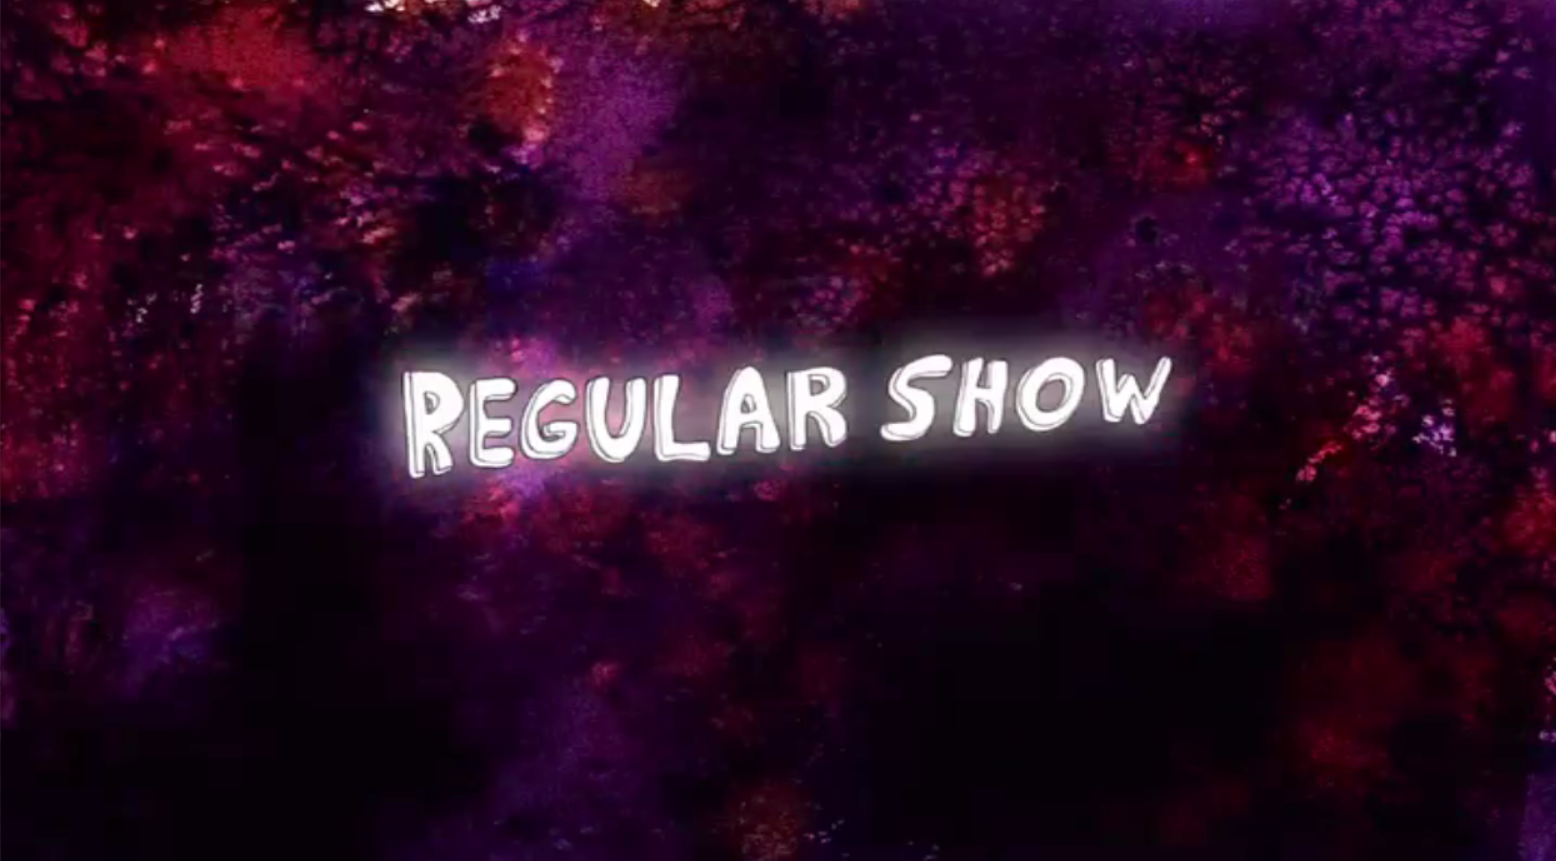 10 Regular Show HD Wallpapers Background Images 1556x861